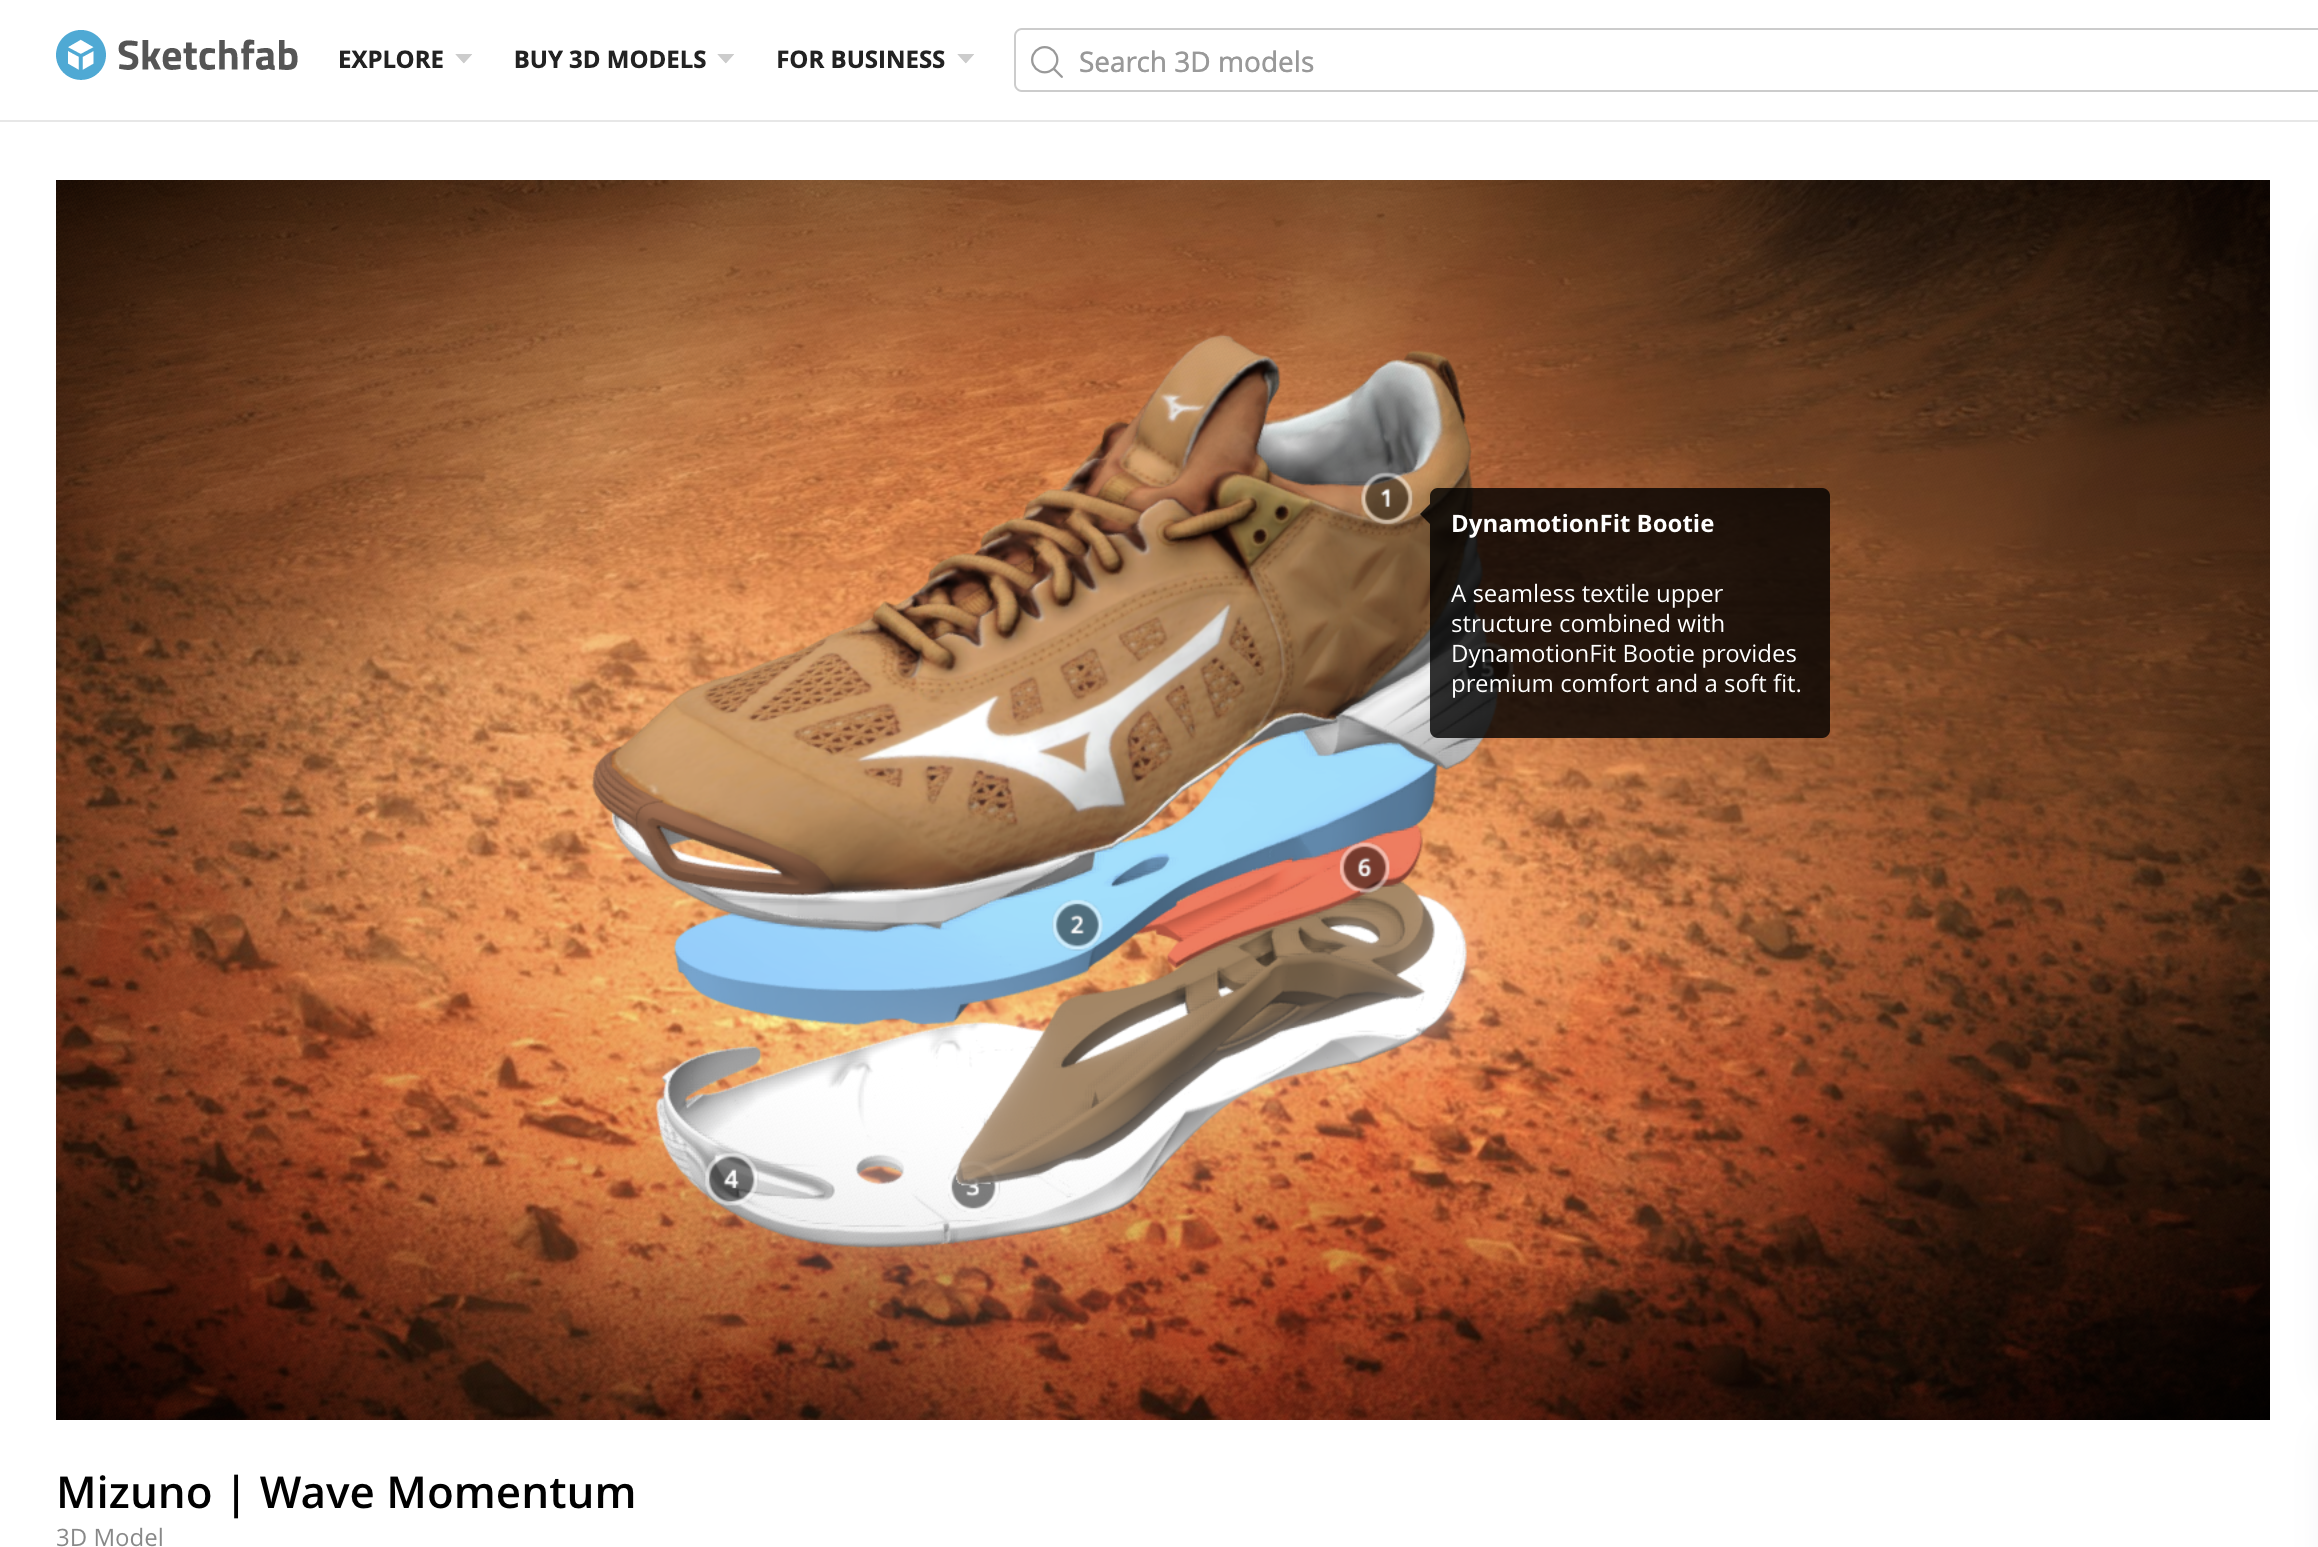 Screenshot of the Sketchfab platform being used for a 3D sneaker asset